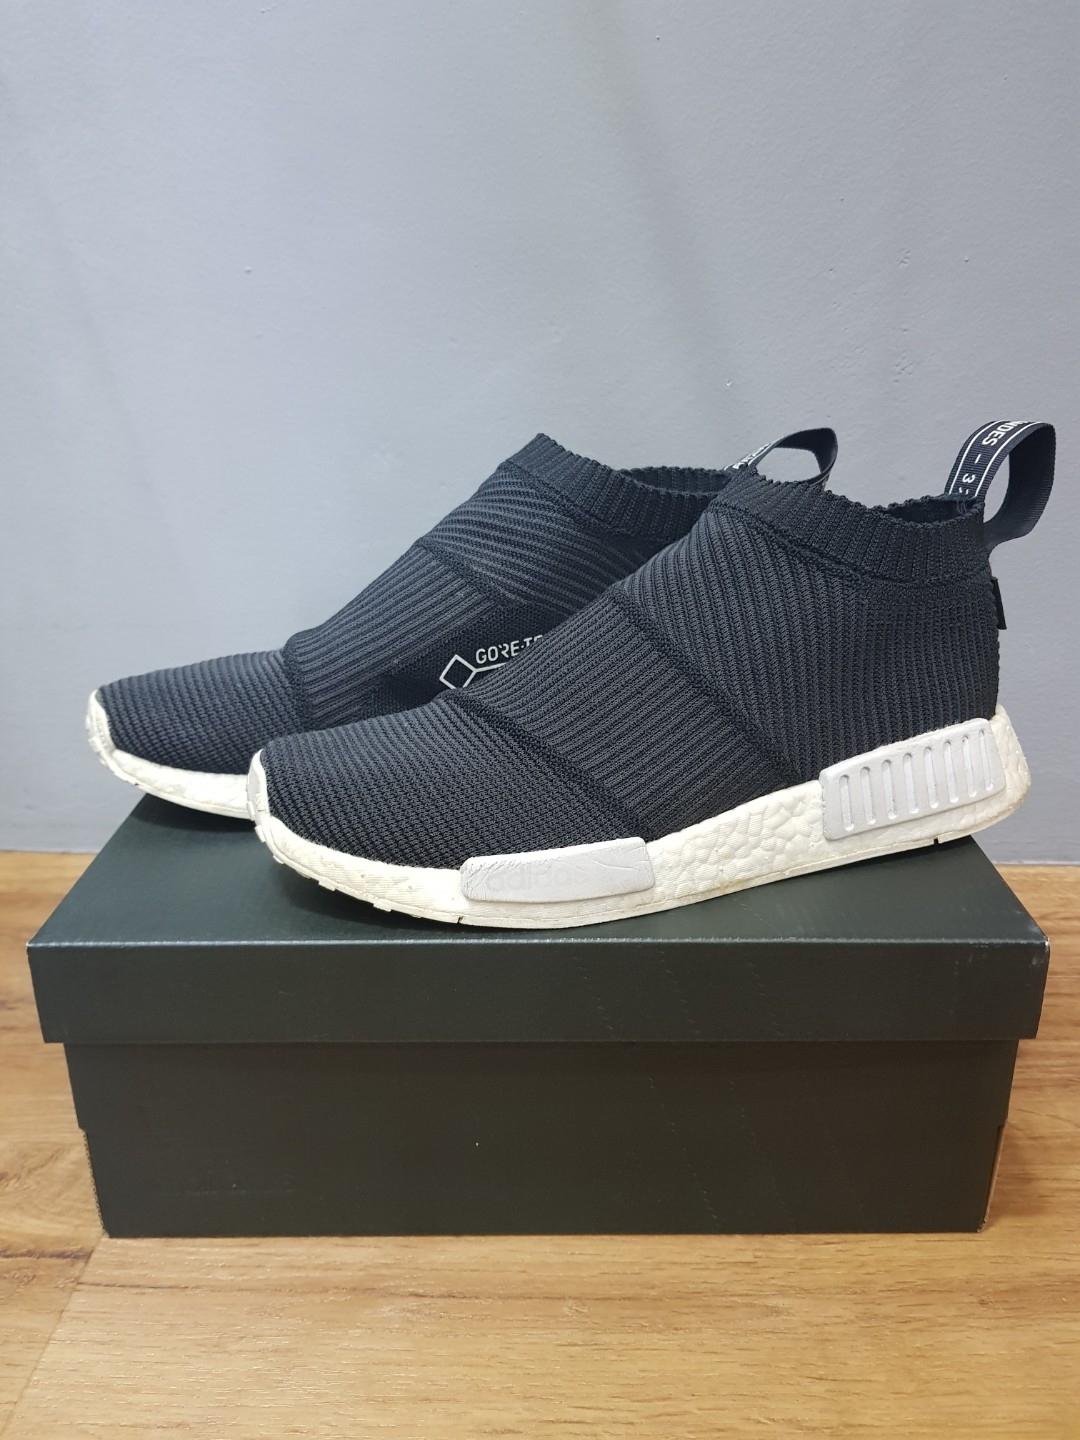 3f375acfef4fb Adidas NMD City Sock Goretex